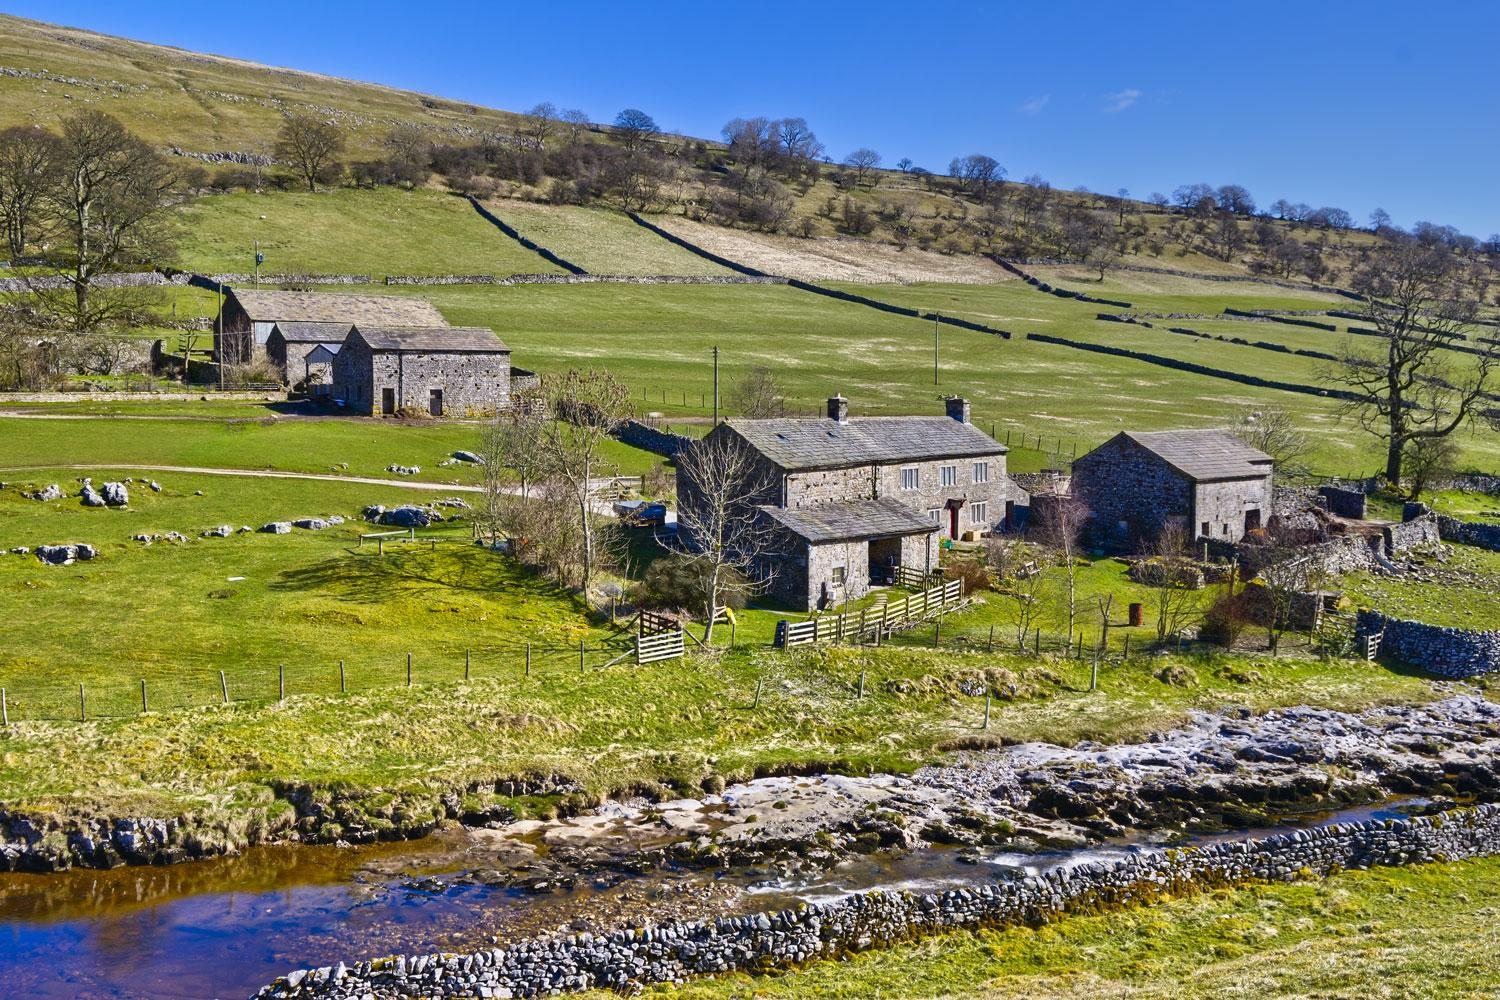 Typical Yorkshire Dales scenery in Wharfedale